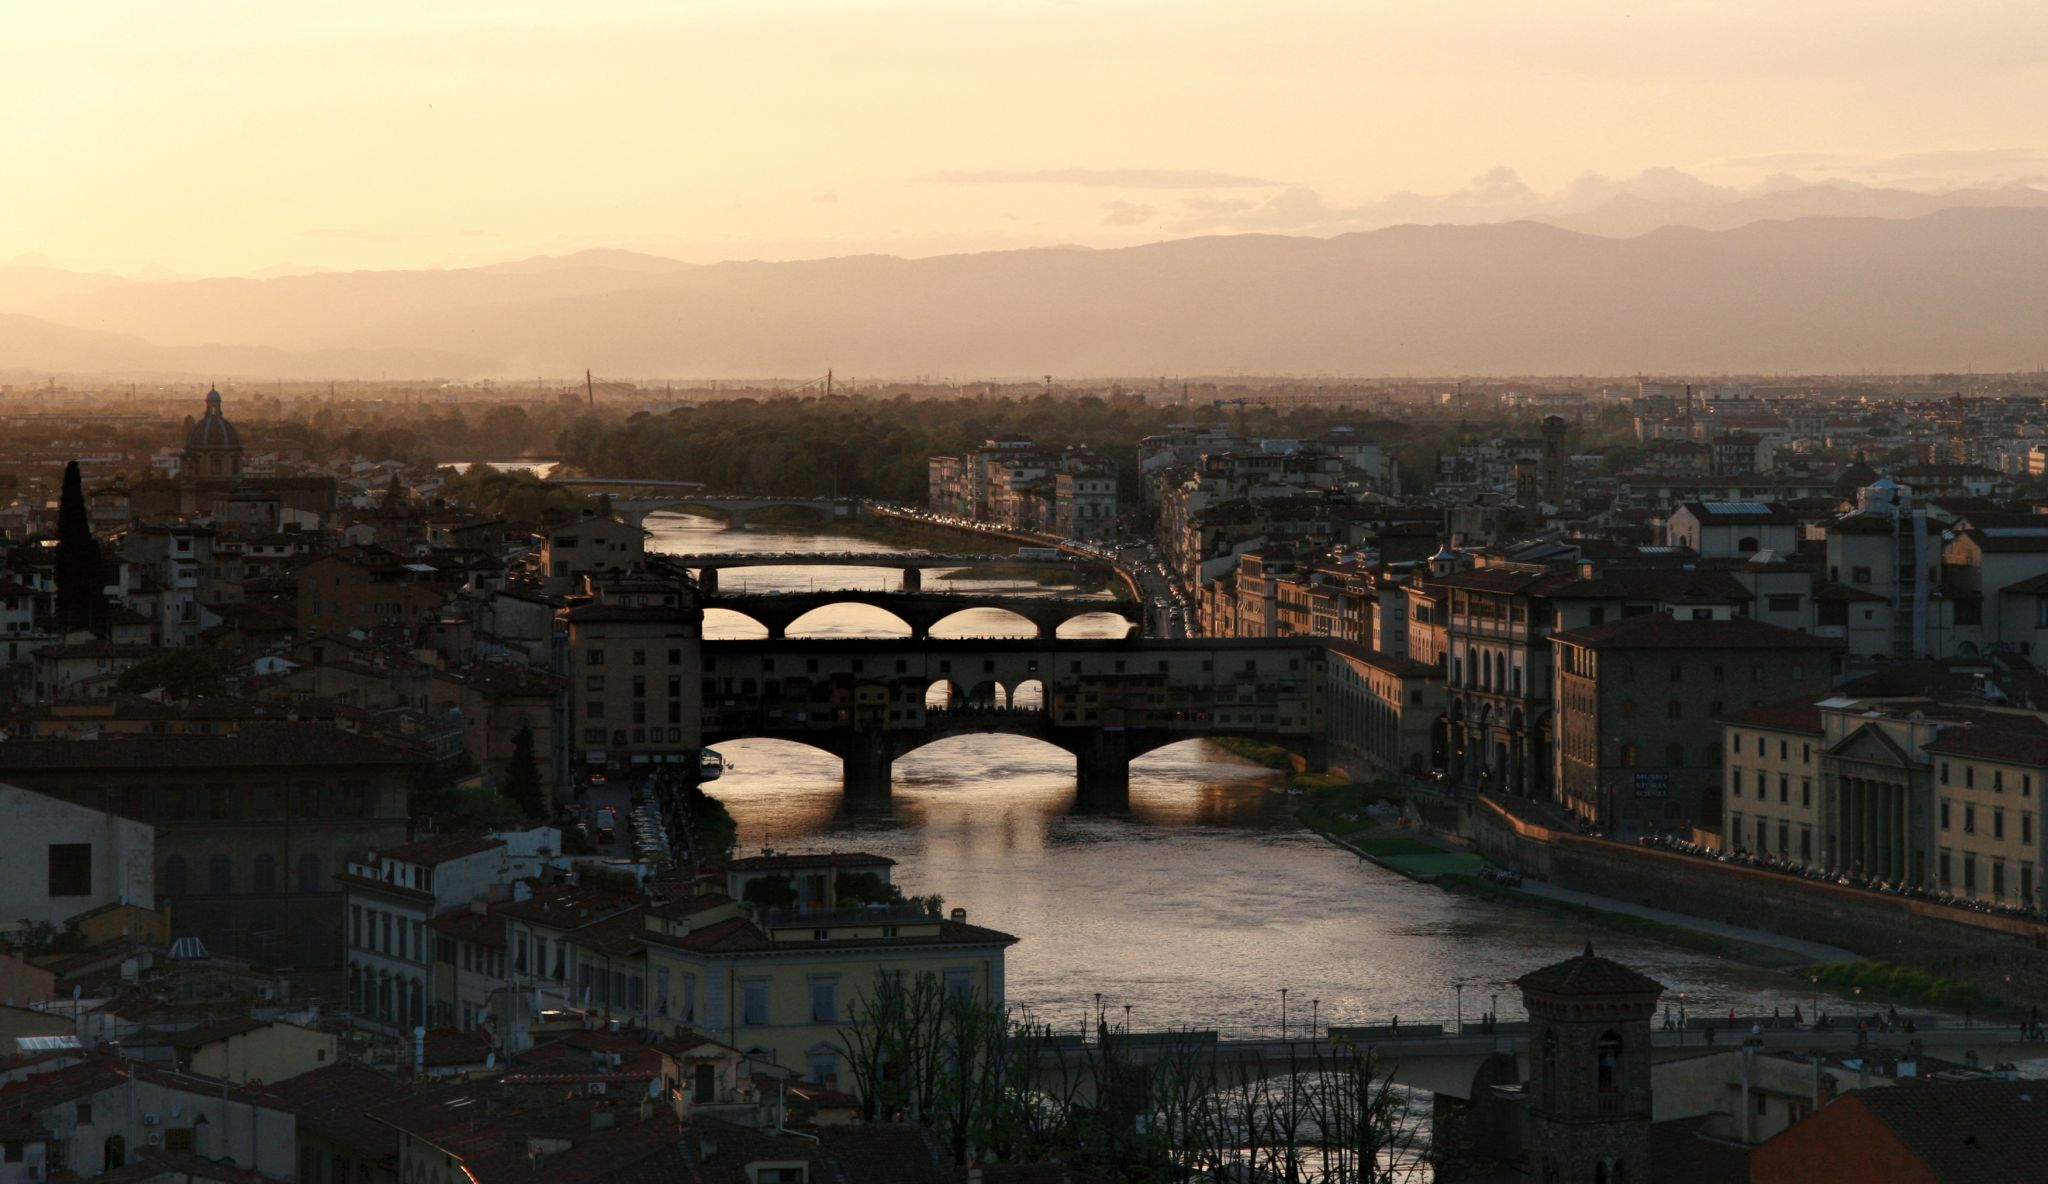 Arno and Bridges in Florence, Italy